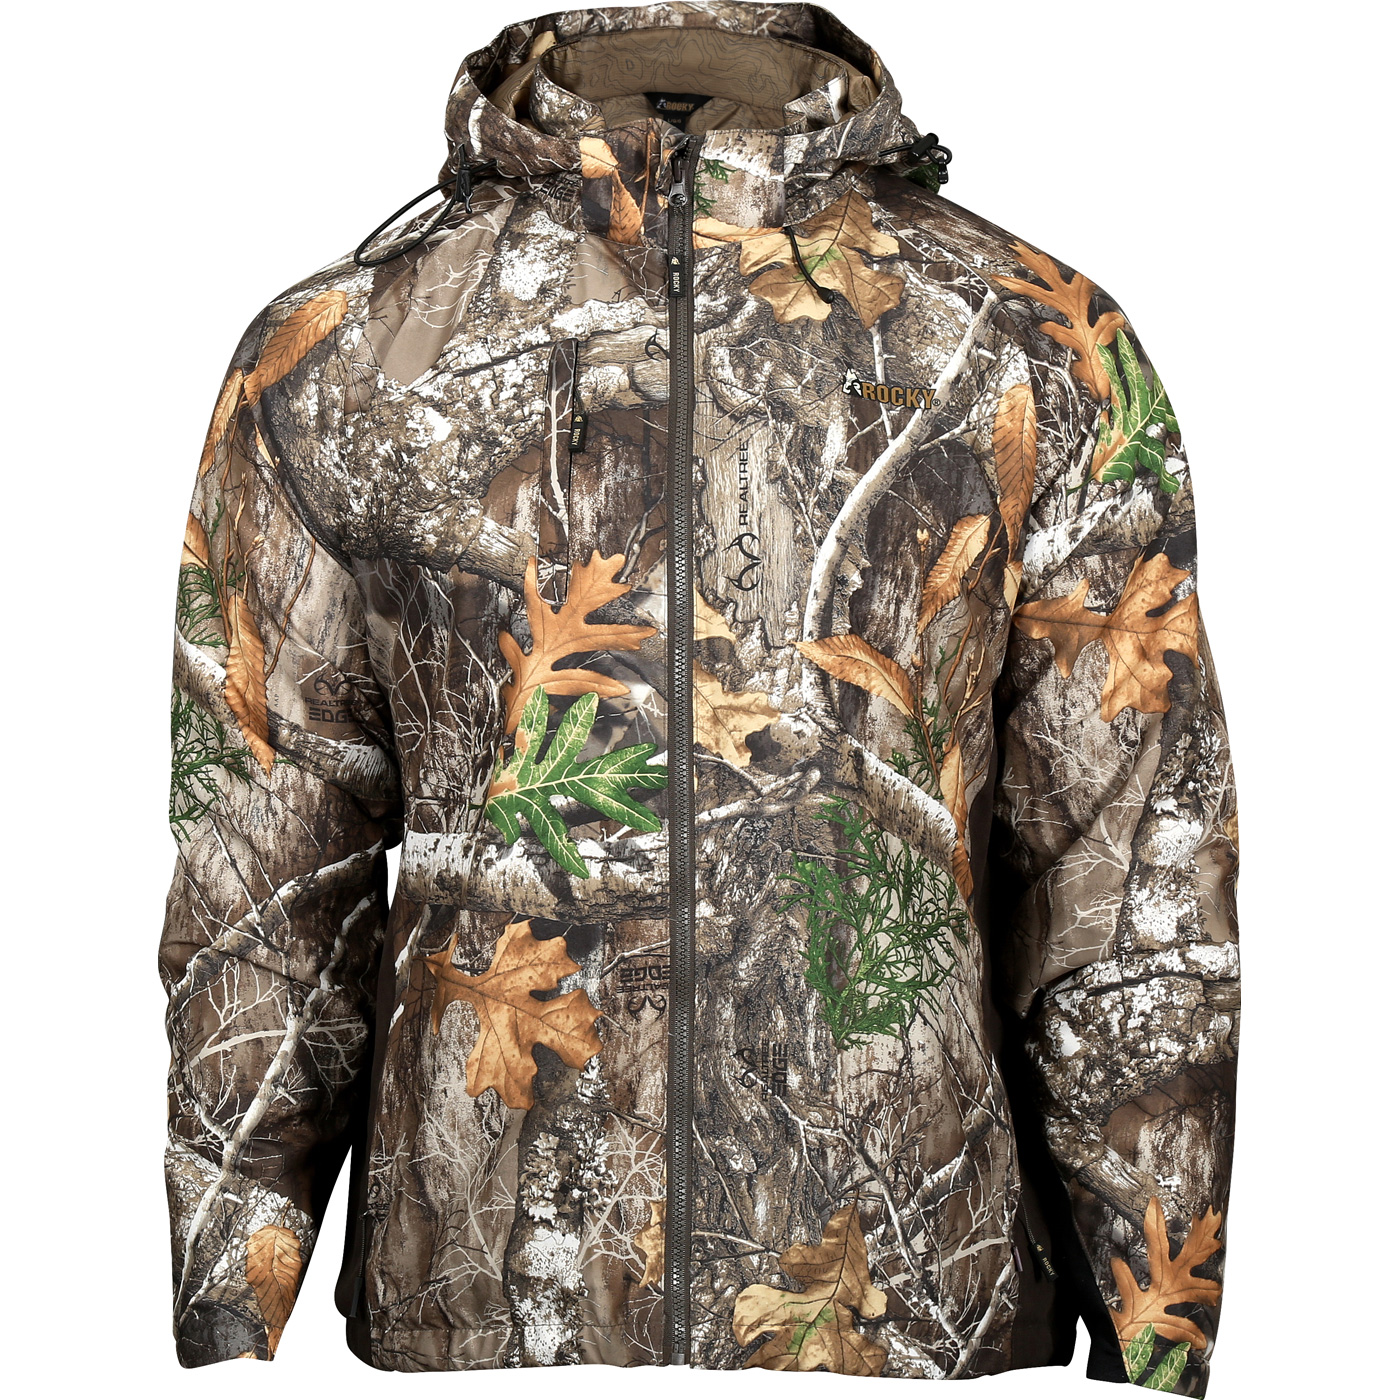 d41443331 Men s Camo Insulated Packable Hunting Jacket